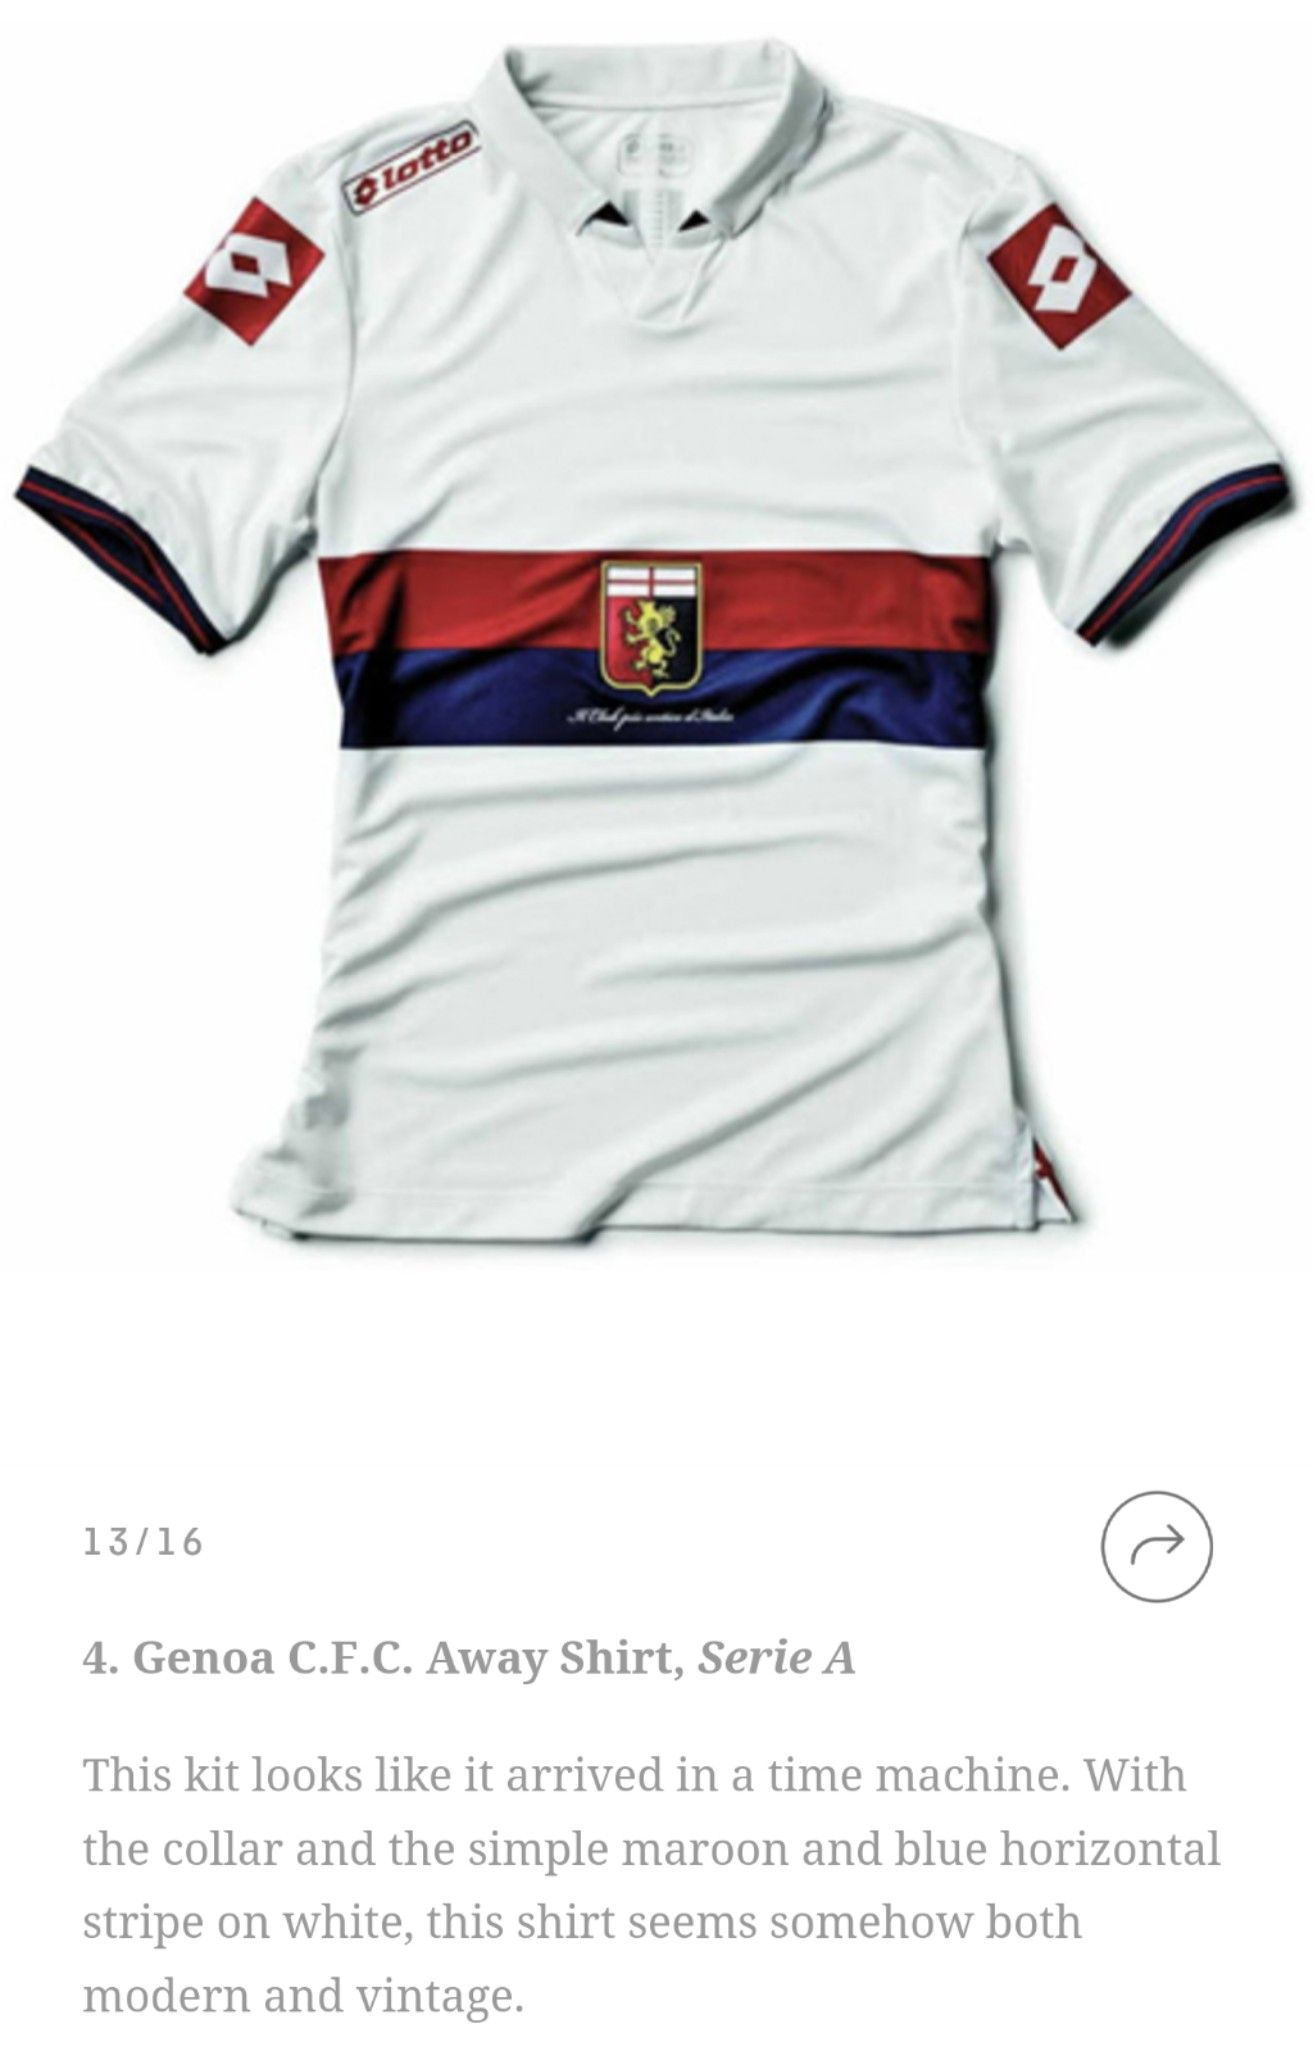 Pin by t augustine on Sport Jerseys Shirts, Sports